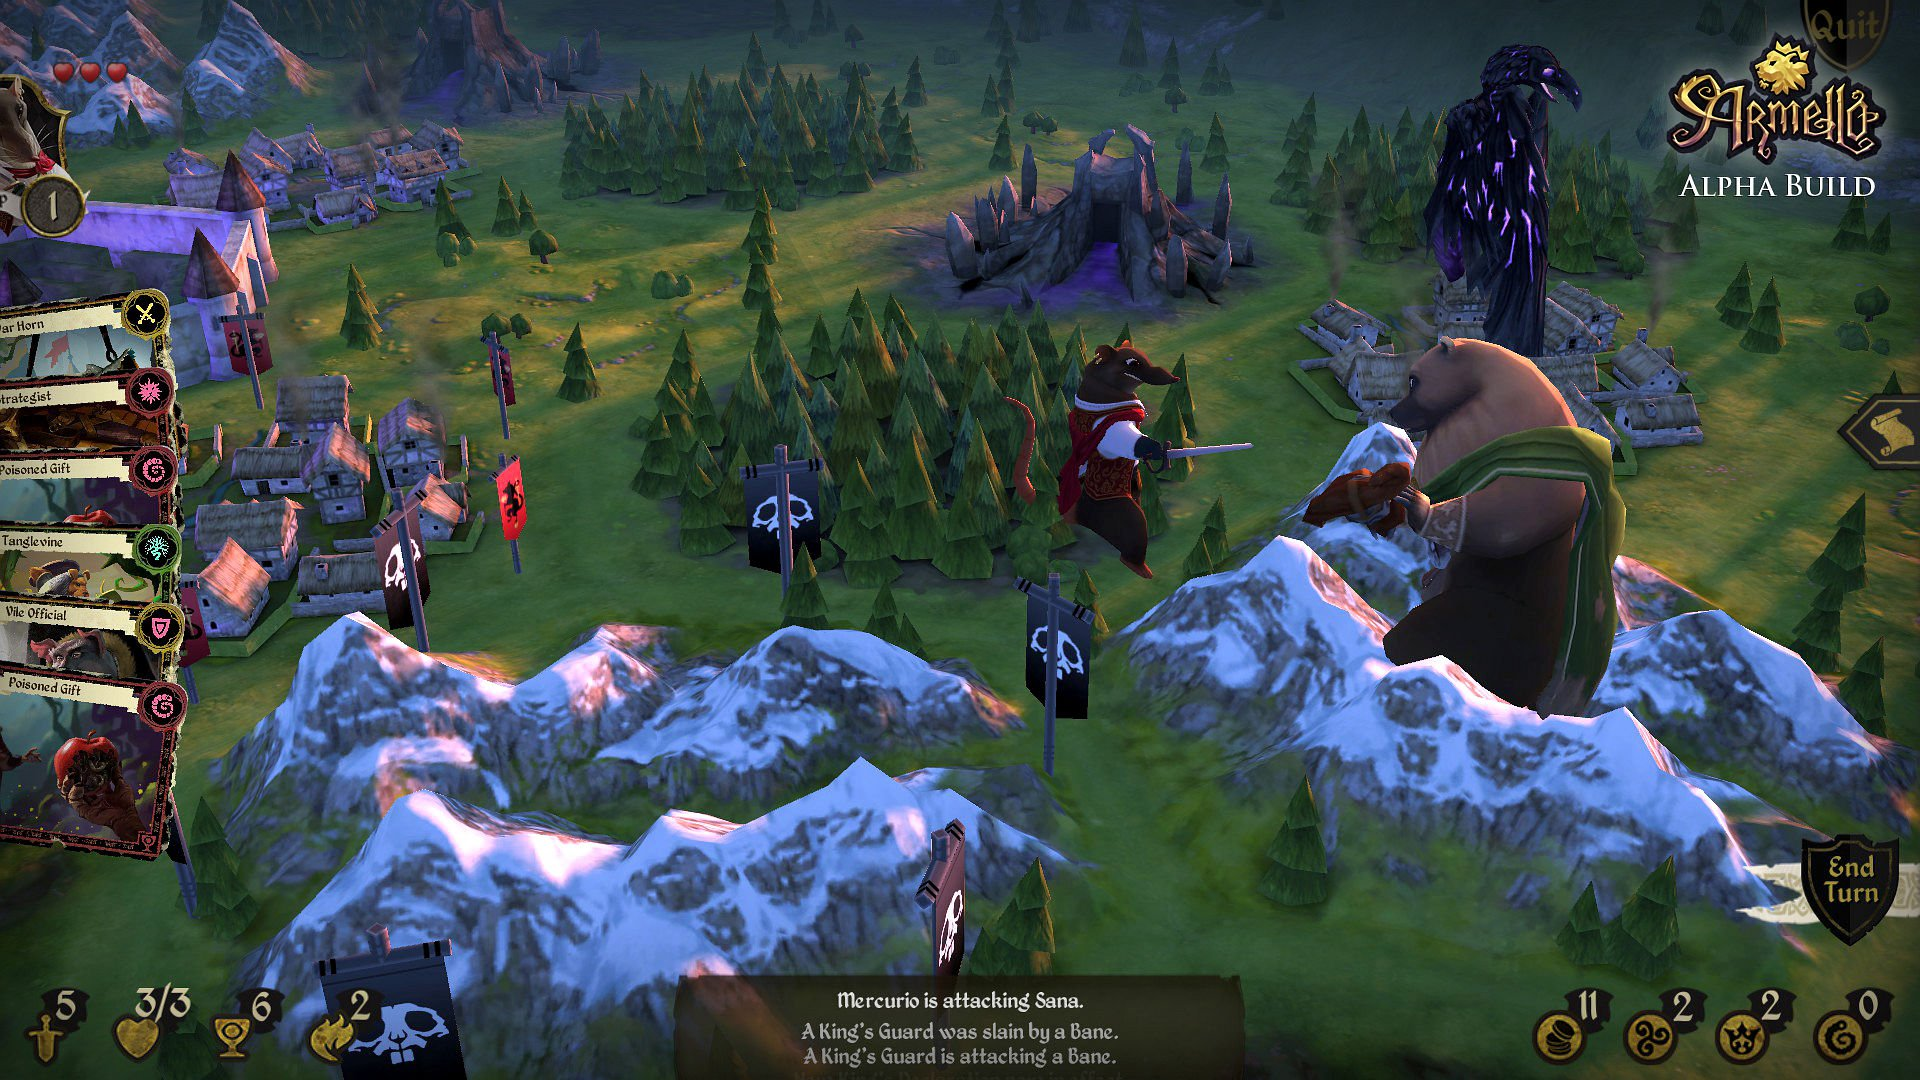 Armello: Game of Thrones with Animals